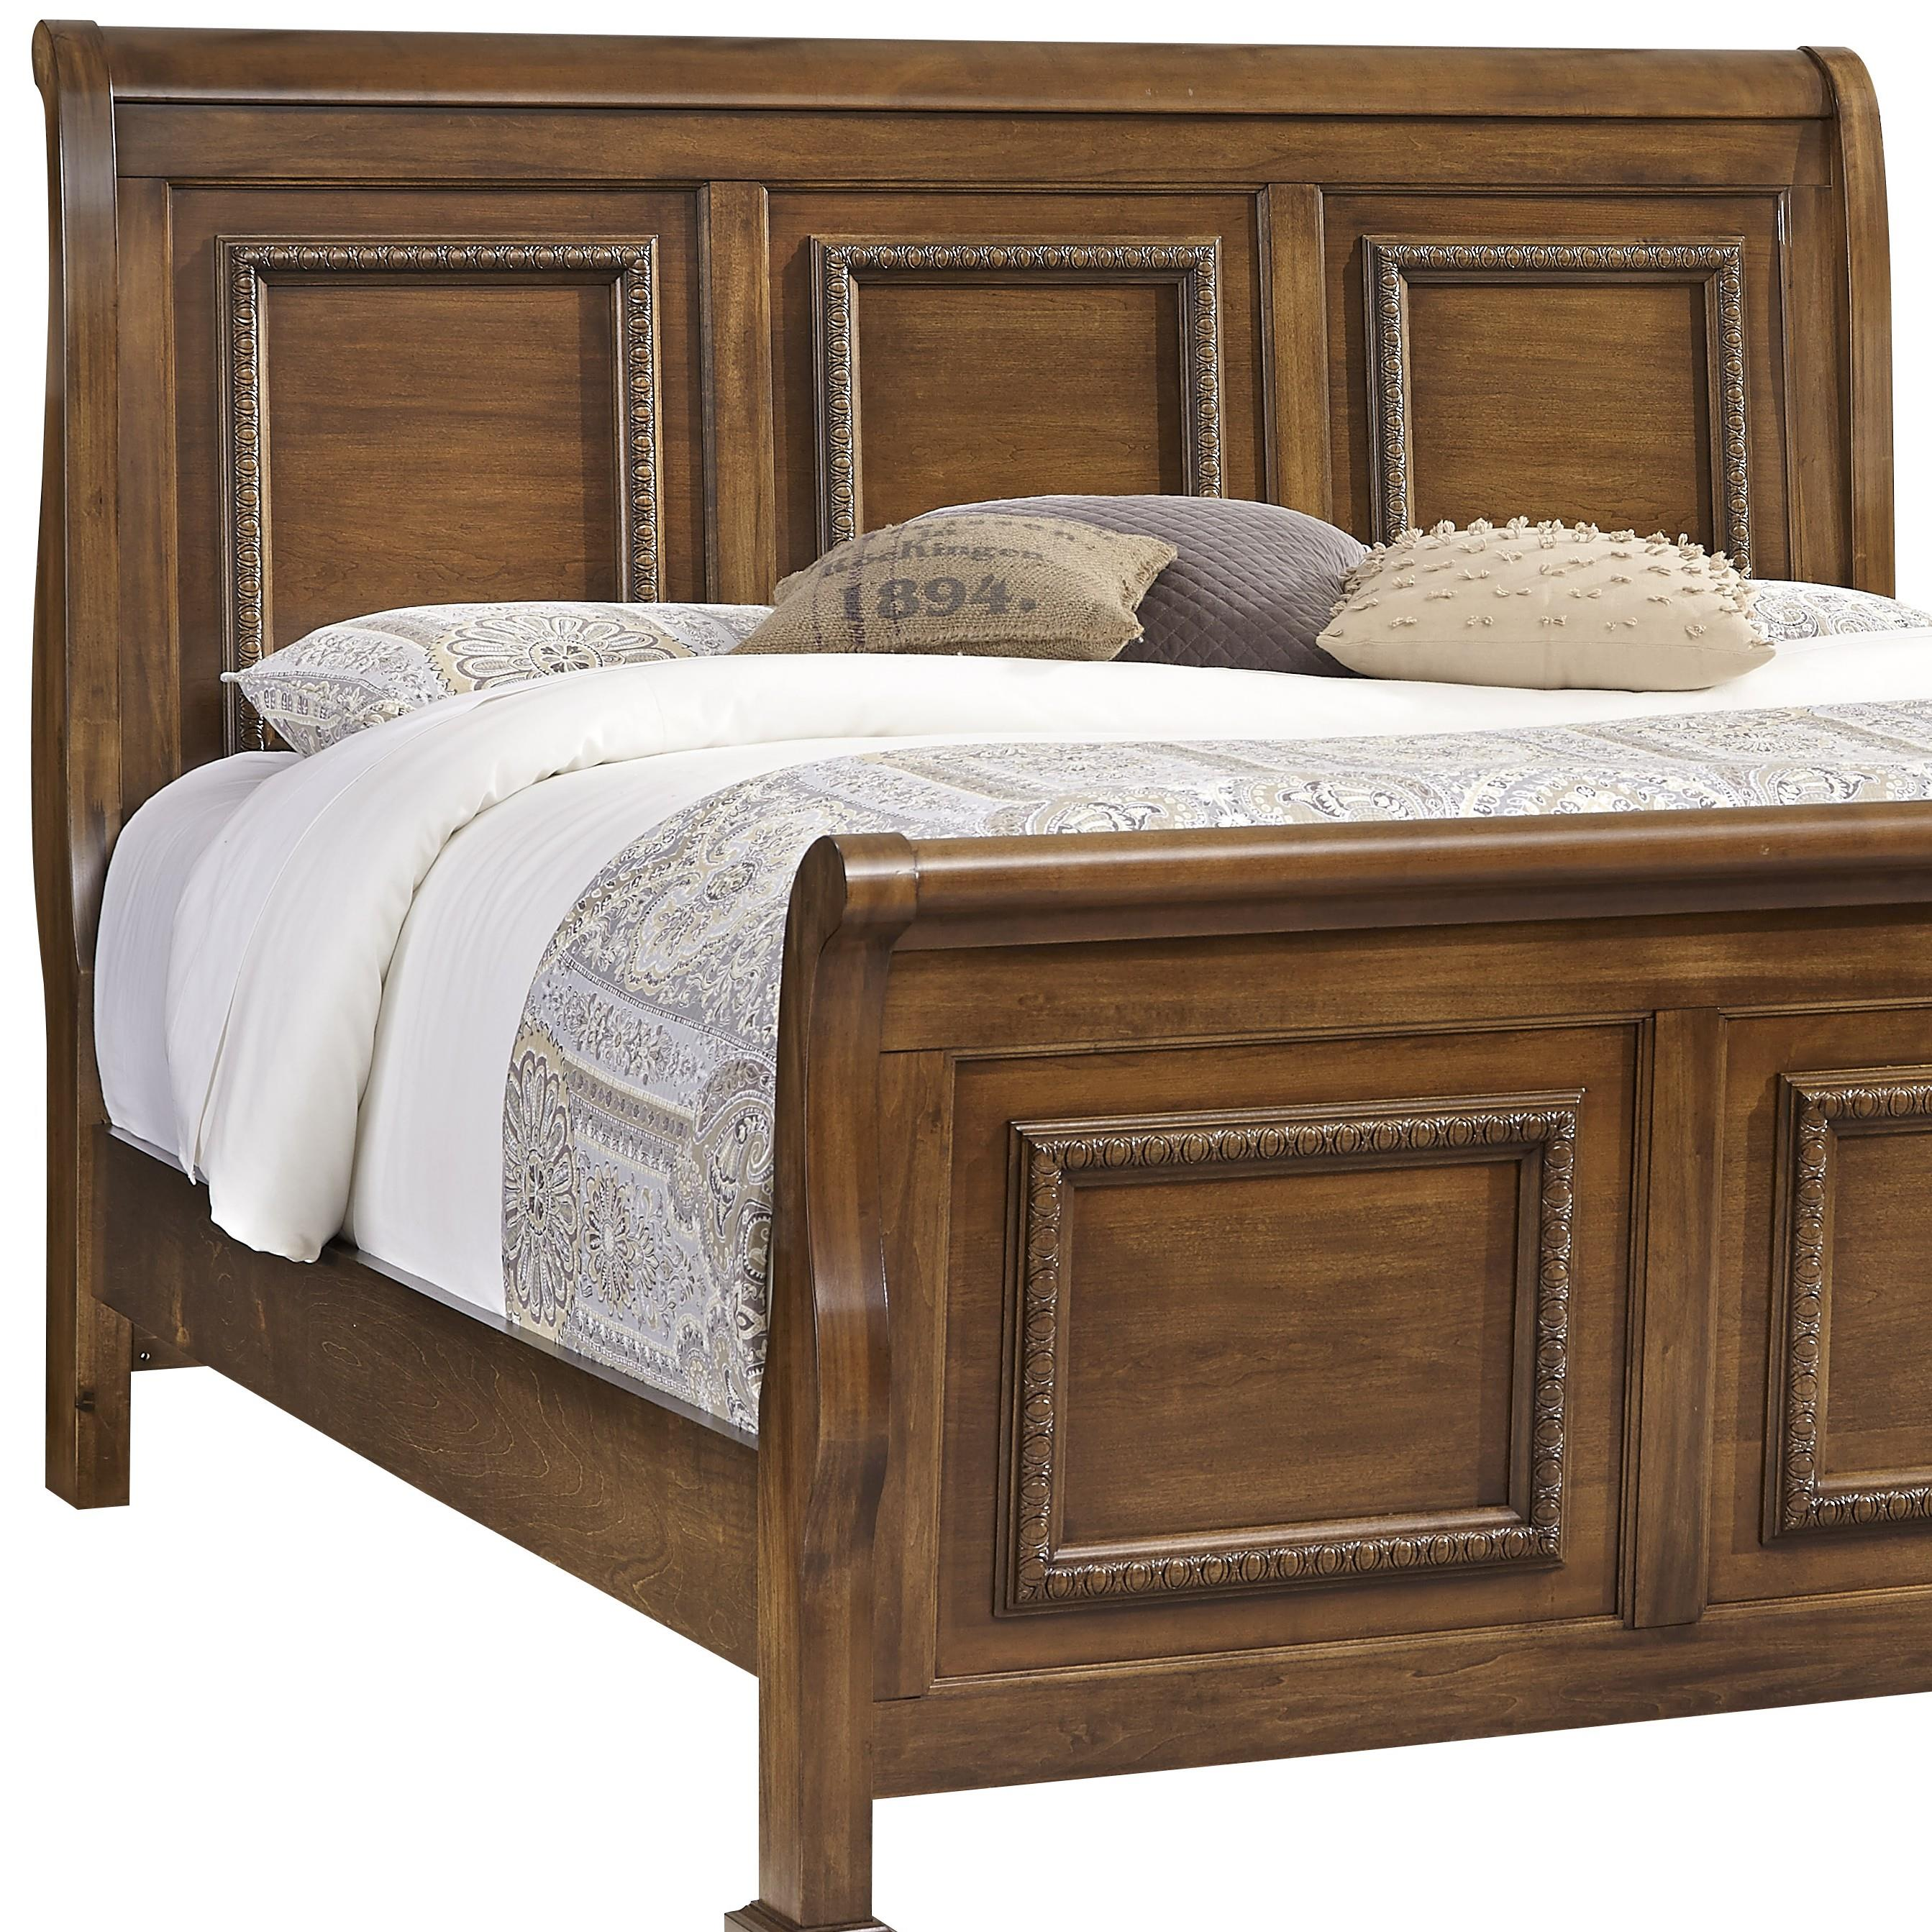 Vaughan Bassett Affinity King Sleigh Headboard - Item Number: 562-663